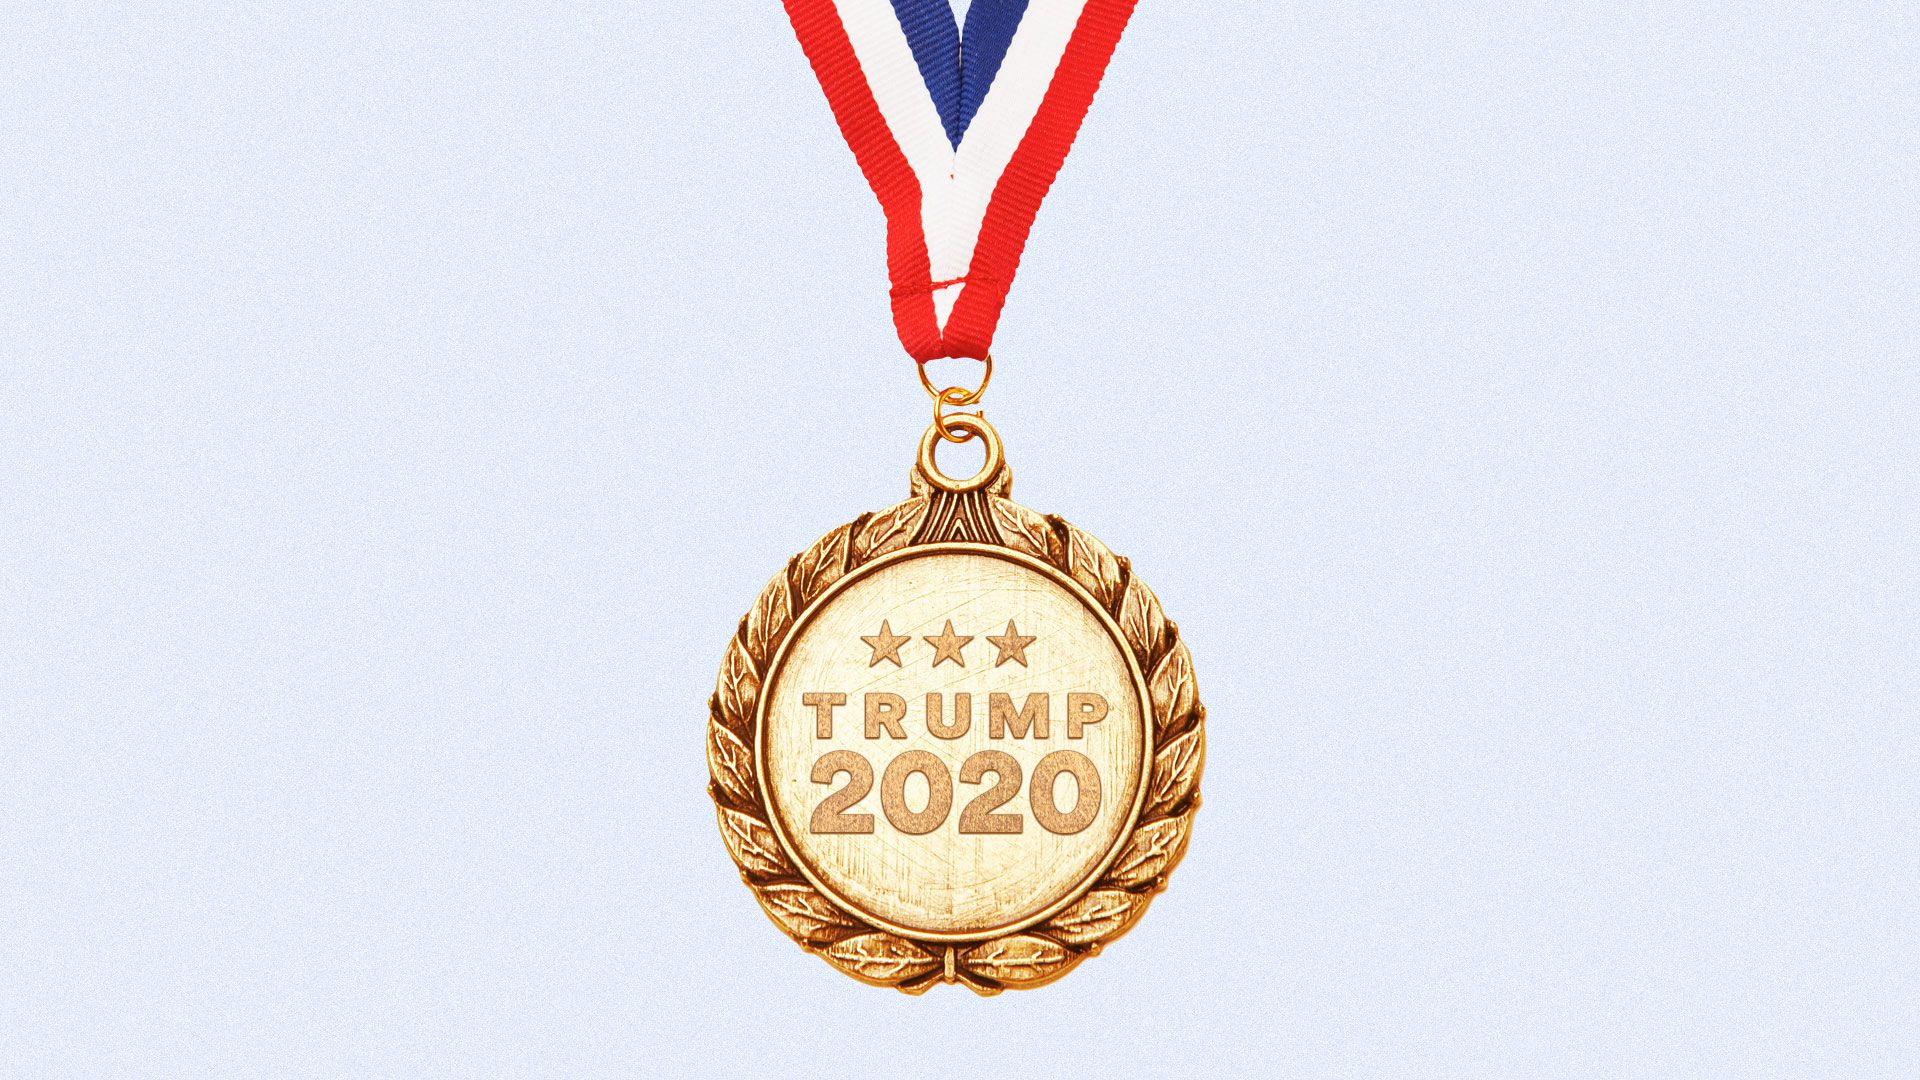 Illustration of a gold medal with Trump 2020.